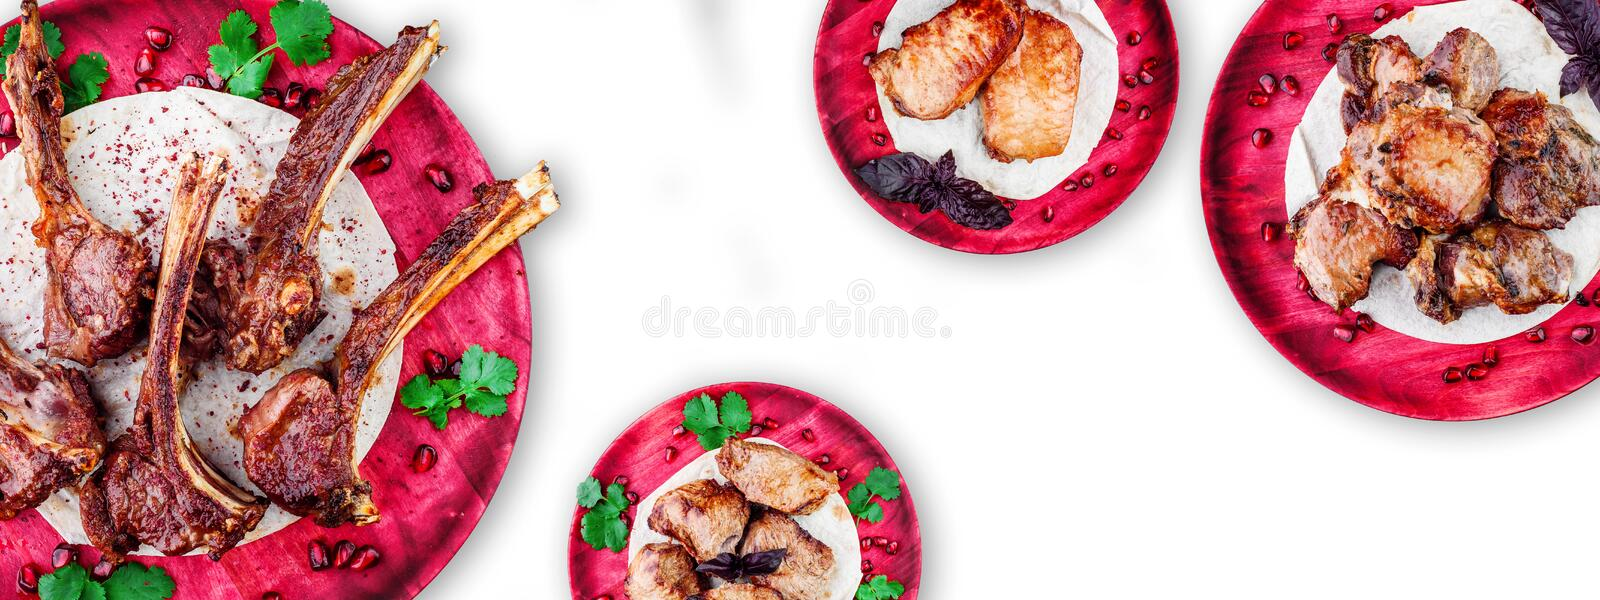 Meat collage. veal ribs, pork, veal and beef barbecue on wooden red plates isolated on a white background. top view. Close up. space royalty free stock photos